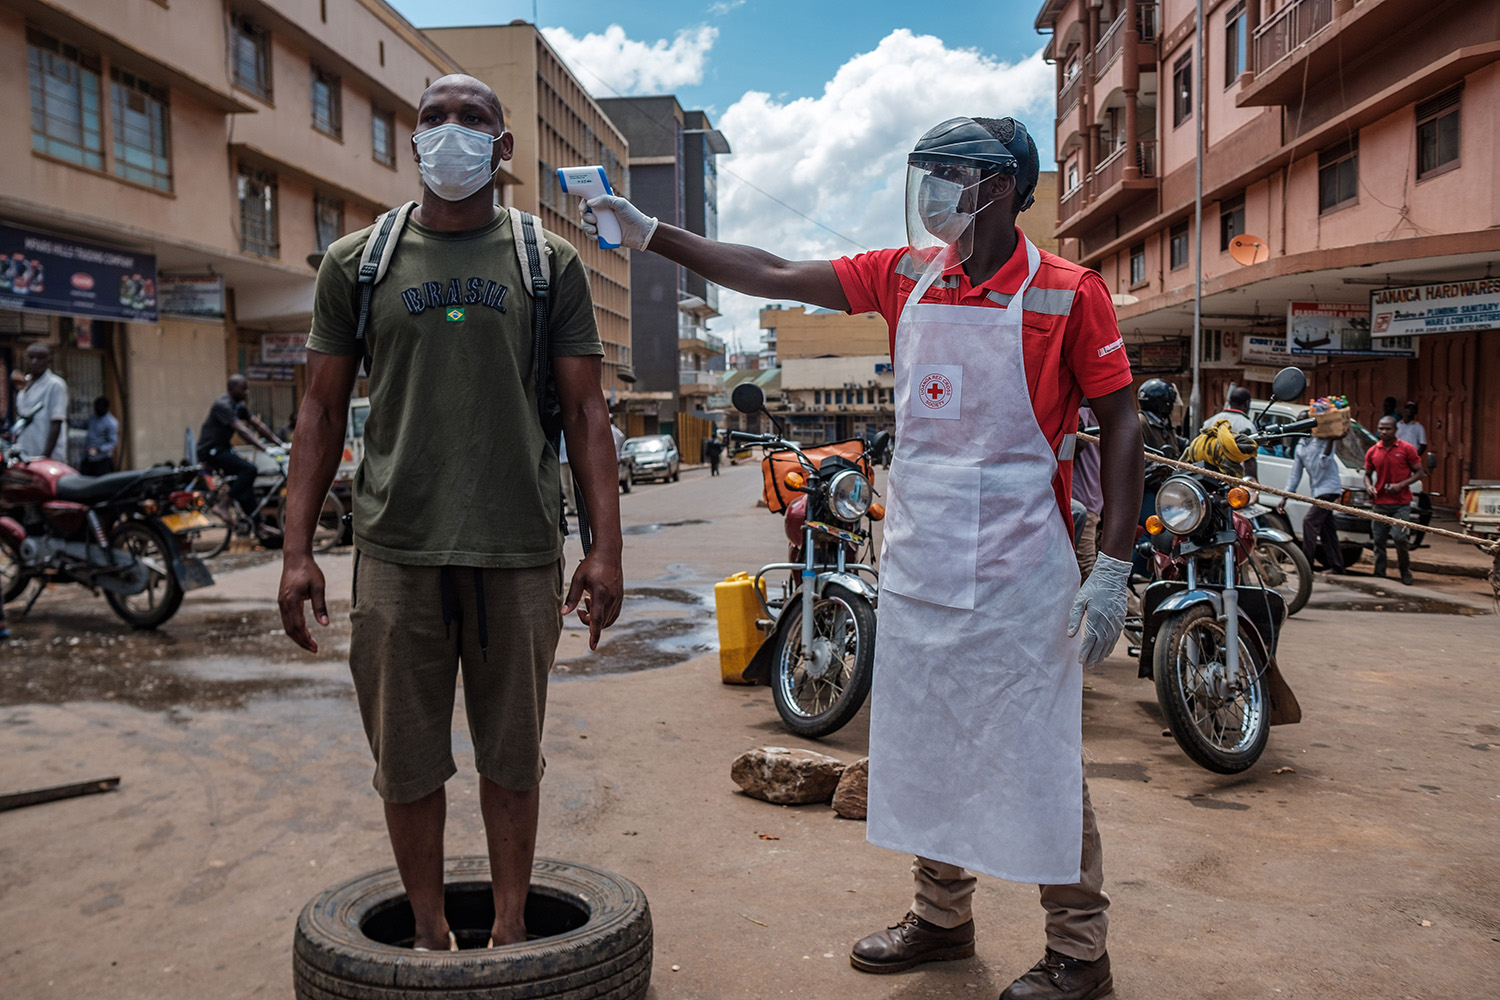 A Red Cross volunteer measures the temperature of a man before he is allowed to enter the Nakasero Market in Kampala, Uganda, on April 1. SUMY SADURNI/AFP via Getty Images